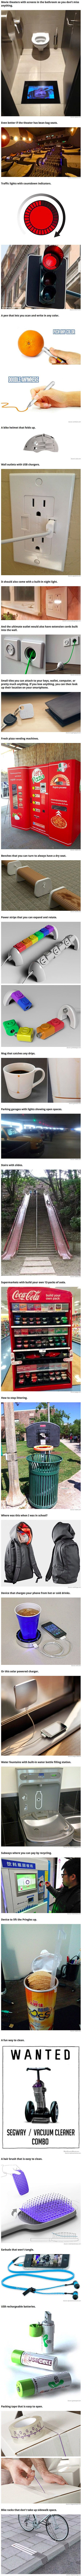 Every Single One Of These Needs To Happen Design Pinterest - 24 brilliant inventions every lazy person will love